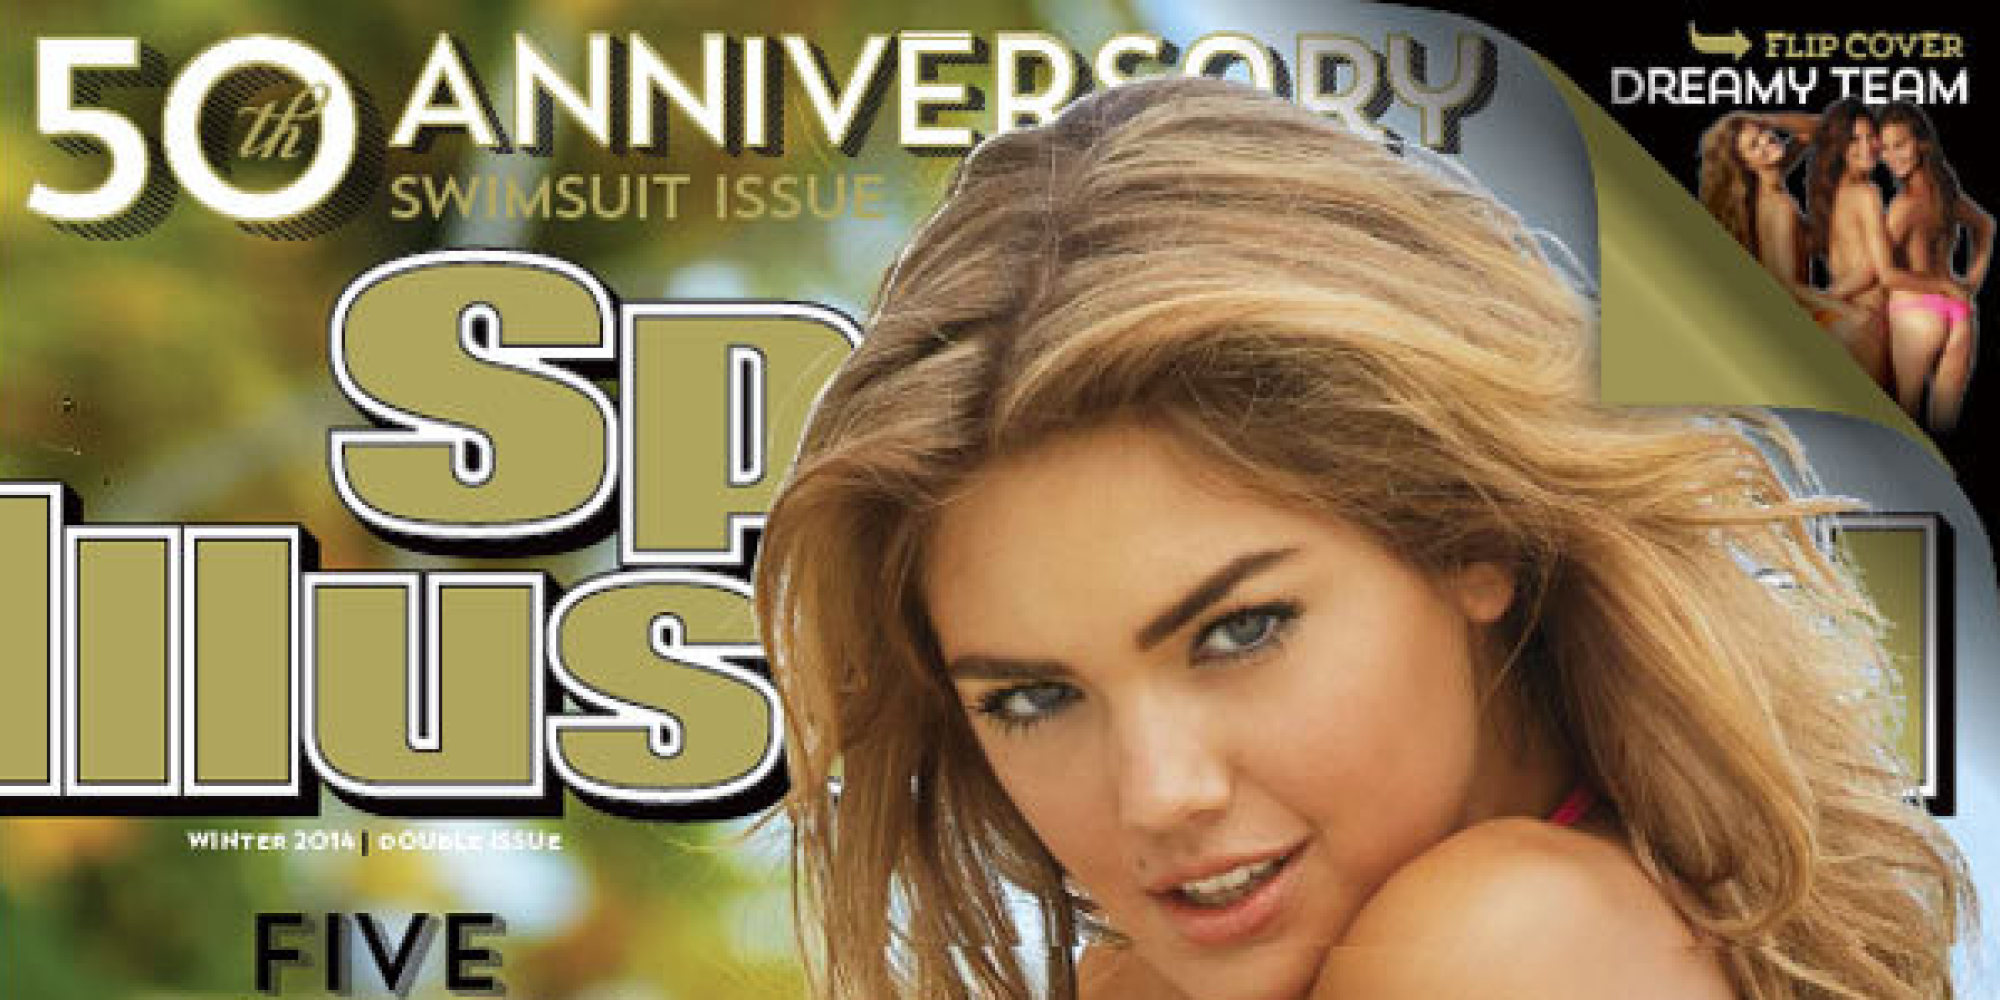 The Summer I Turned Pretty Book Cover Models ~ Kate upton scores her third sports illustrated swimsuit